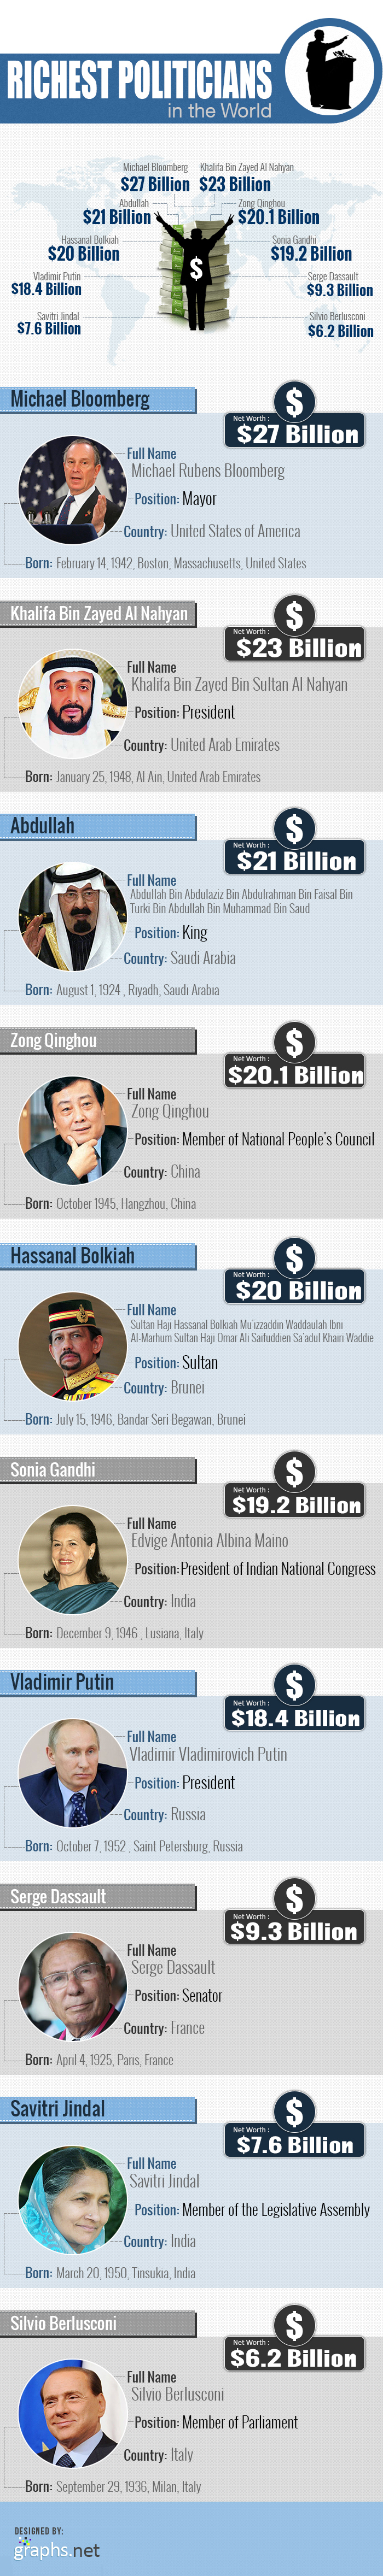 richest_politicians